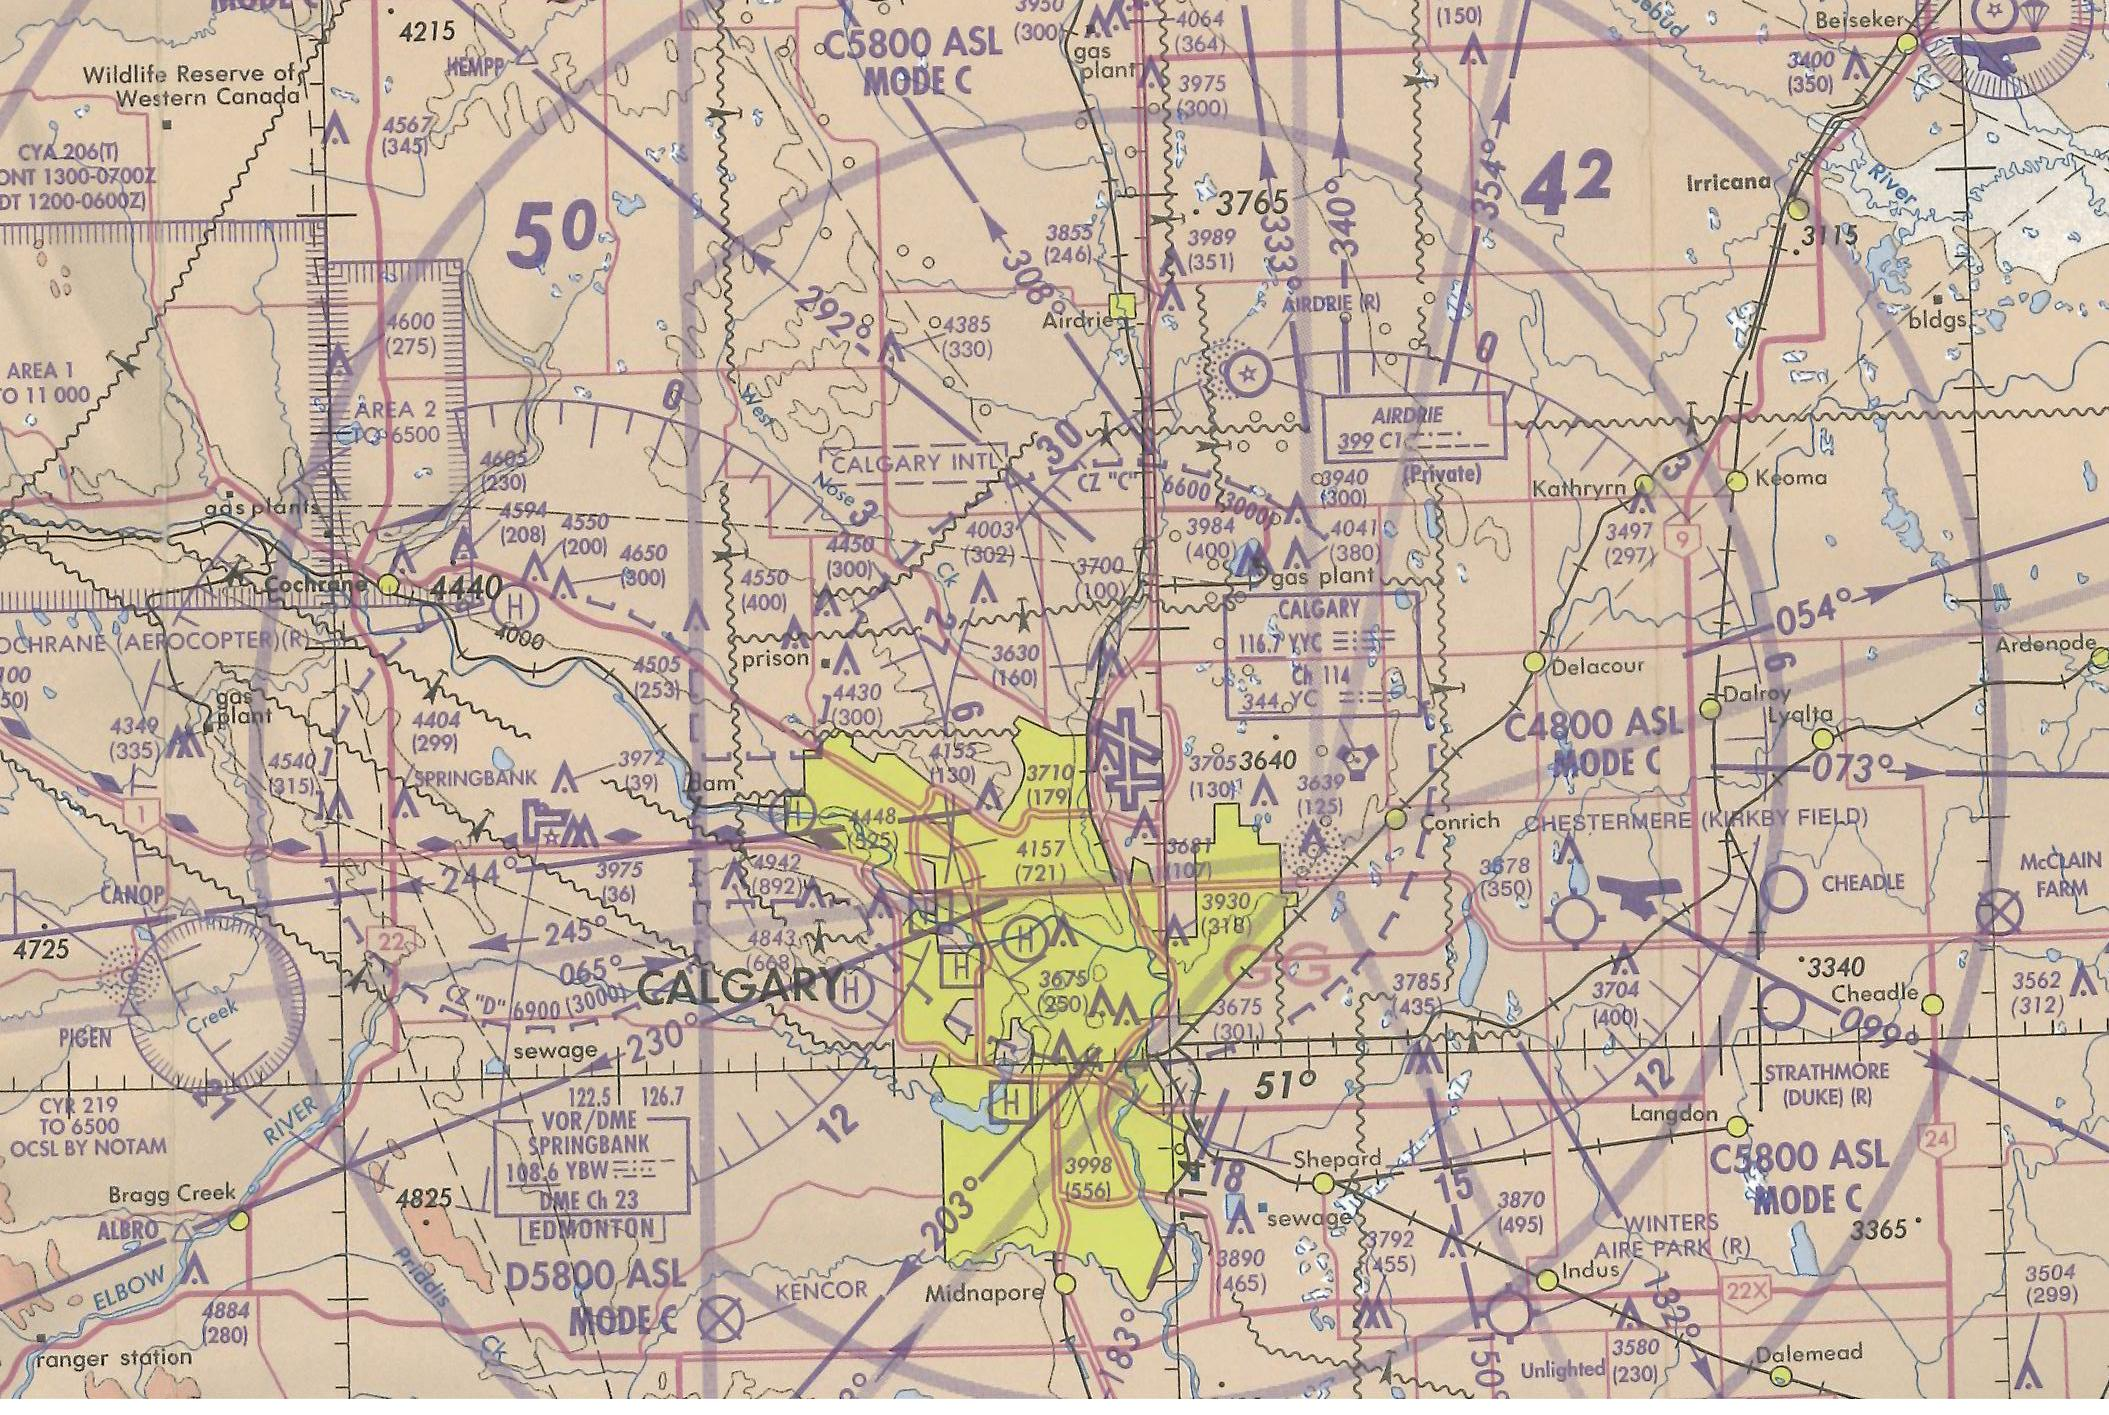 Calgary Control Zone, Langley Flying School's Map Room